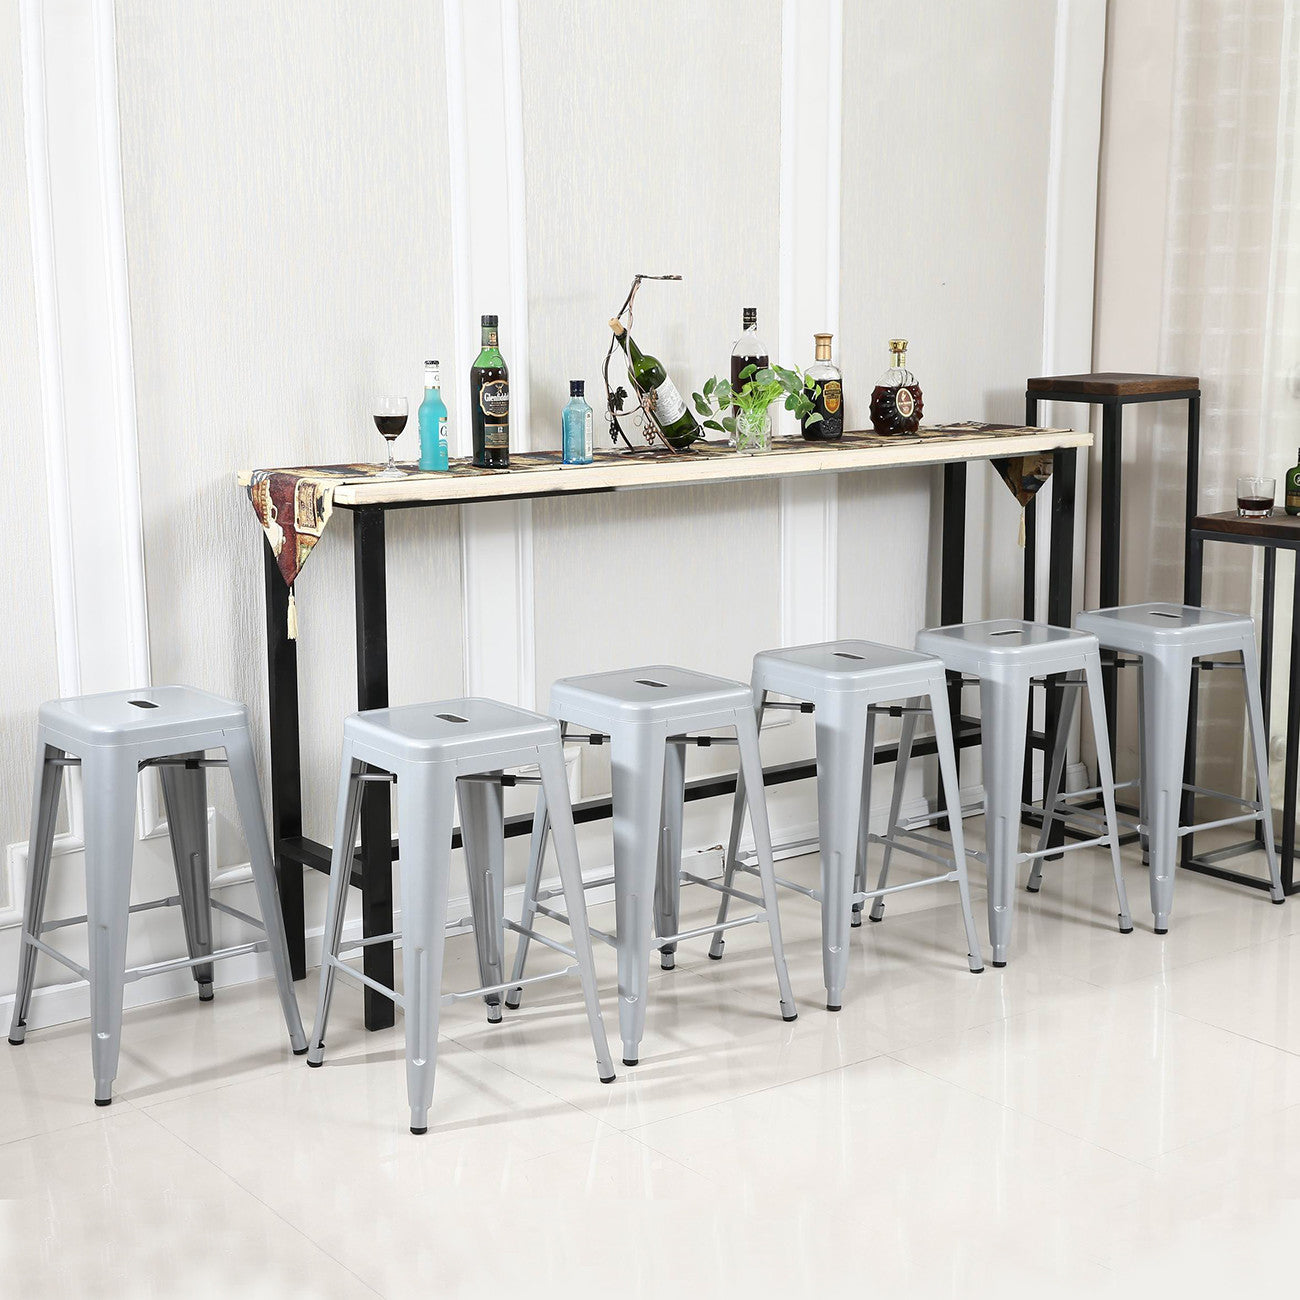 Clayton Gray 30'' Bar Stool  (Set Of 6)